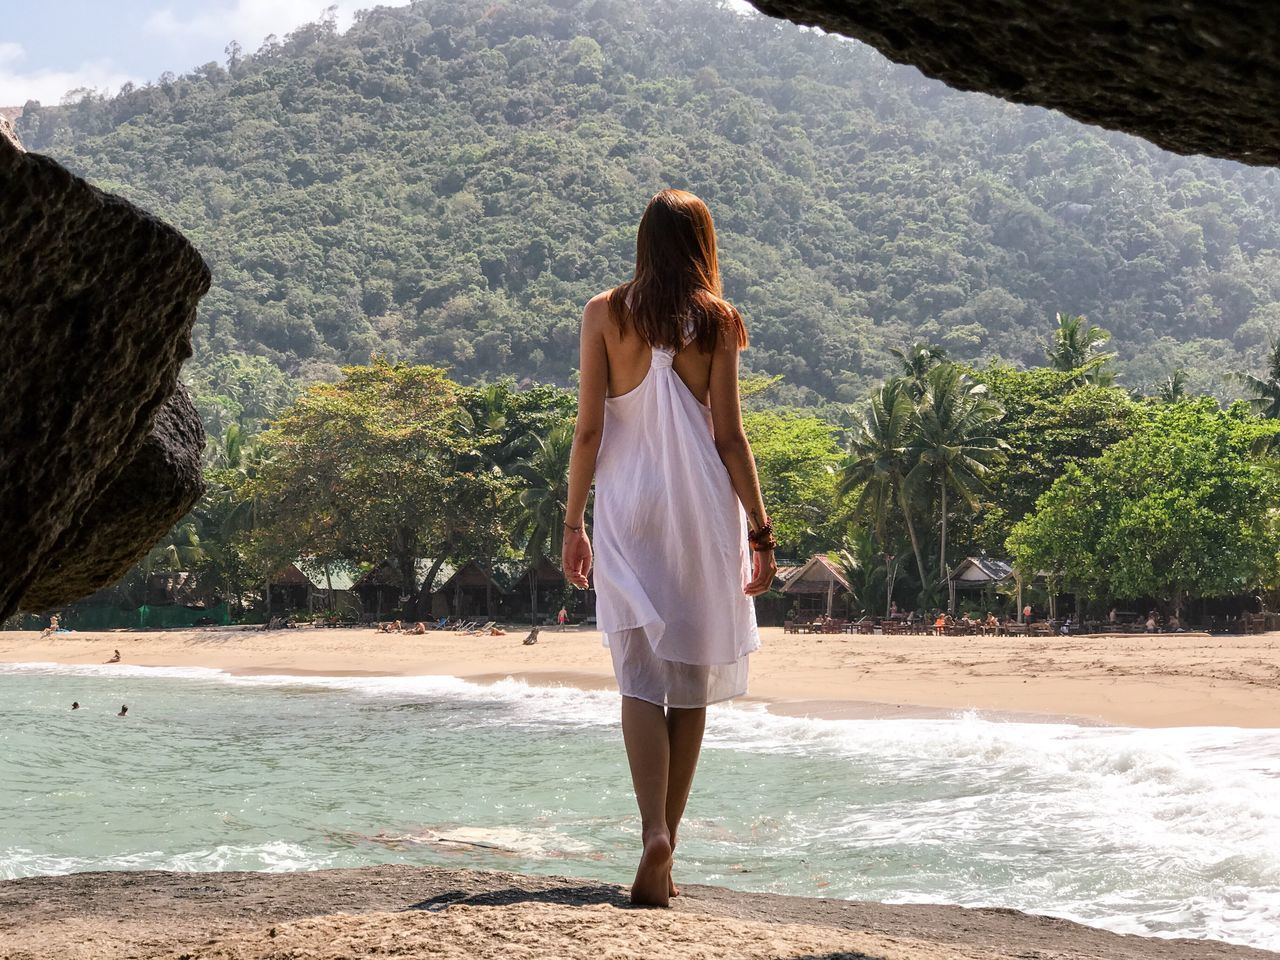 Vacations White Dress Rear View Beach One Person Only Women Beauty In Nature Young Adult Summer Long Hair The Great Outdoors - 2017 EyeEm Awards Tranquility Standing Adults Only Tranquil Scene One Woman Only Mountain Sand Water Travel Destinations Rock - Object Rock Formation Sea Thailand Cave